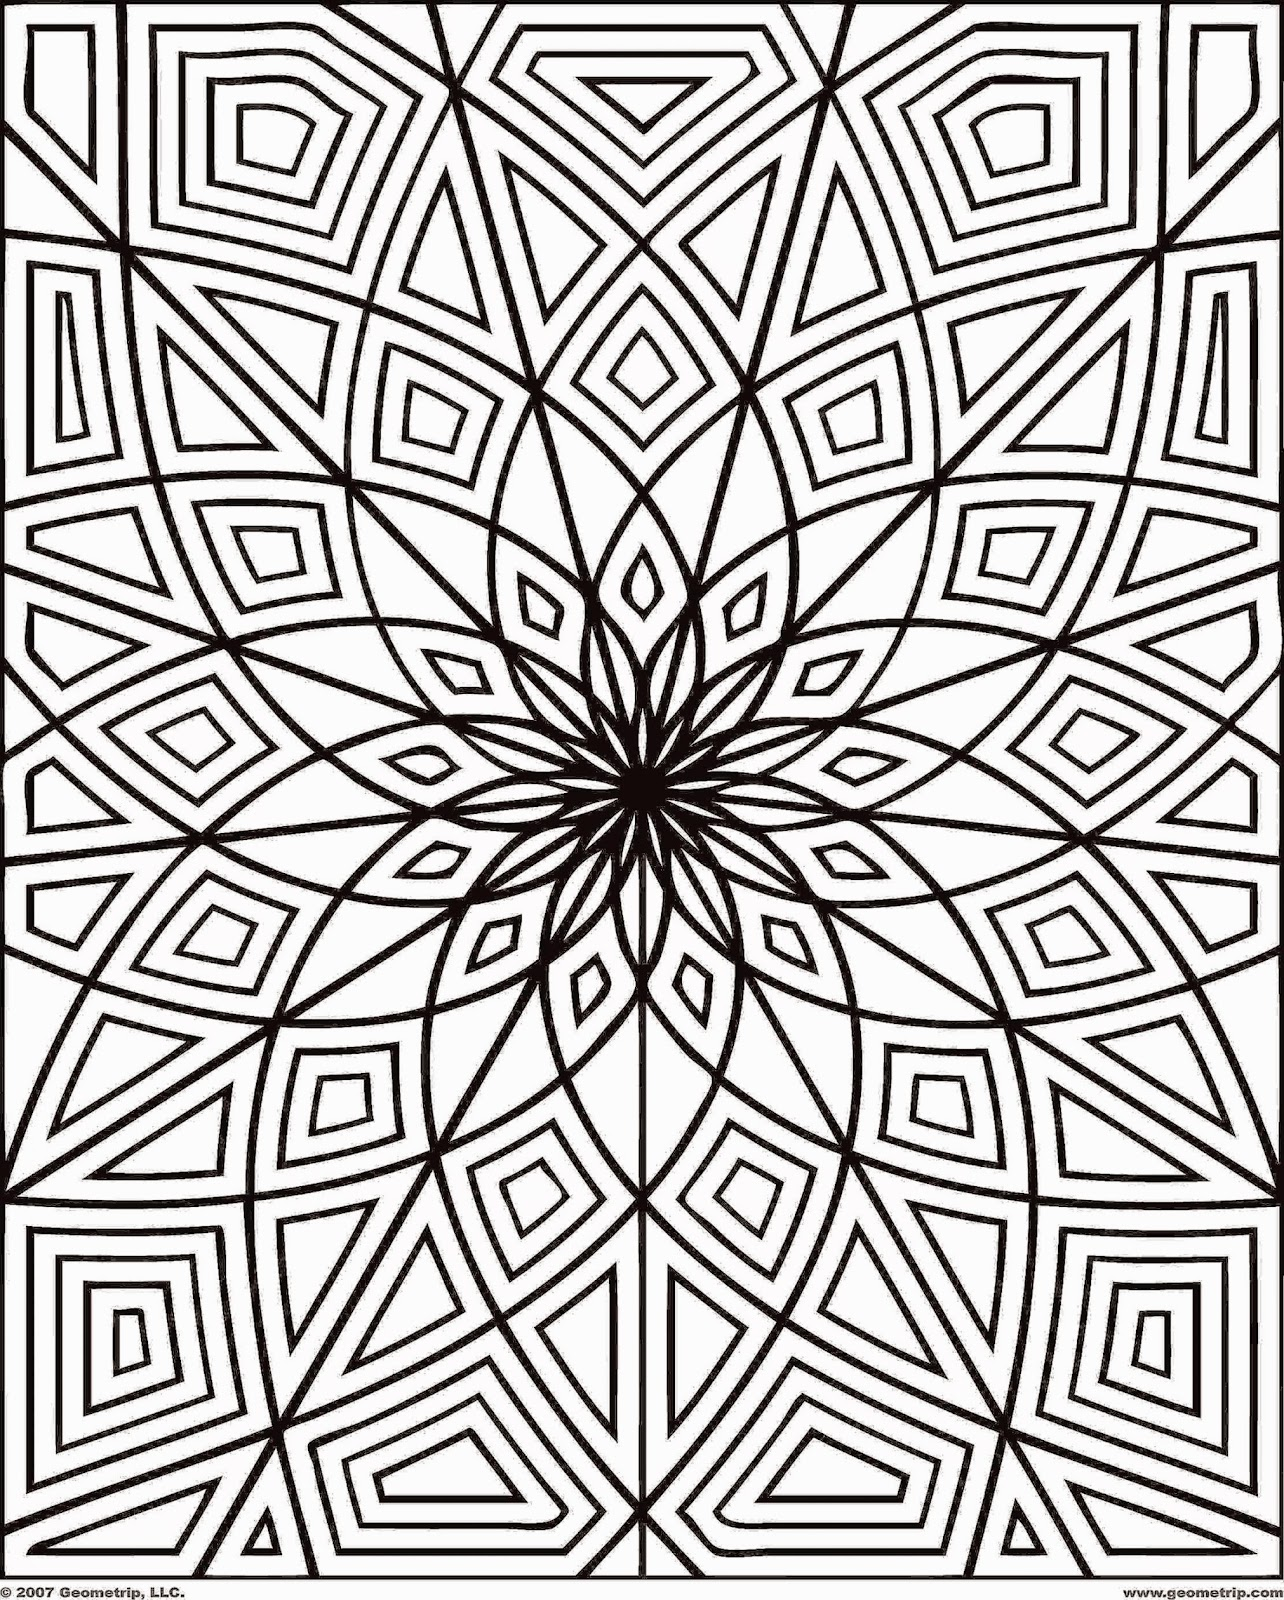 Printable Coloring Pages For Adults Free Coloring Sheet Free Printable Coloring Book Pages For Adults